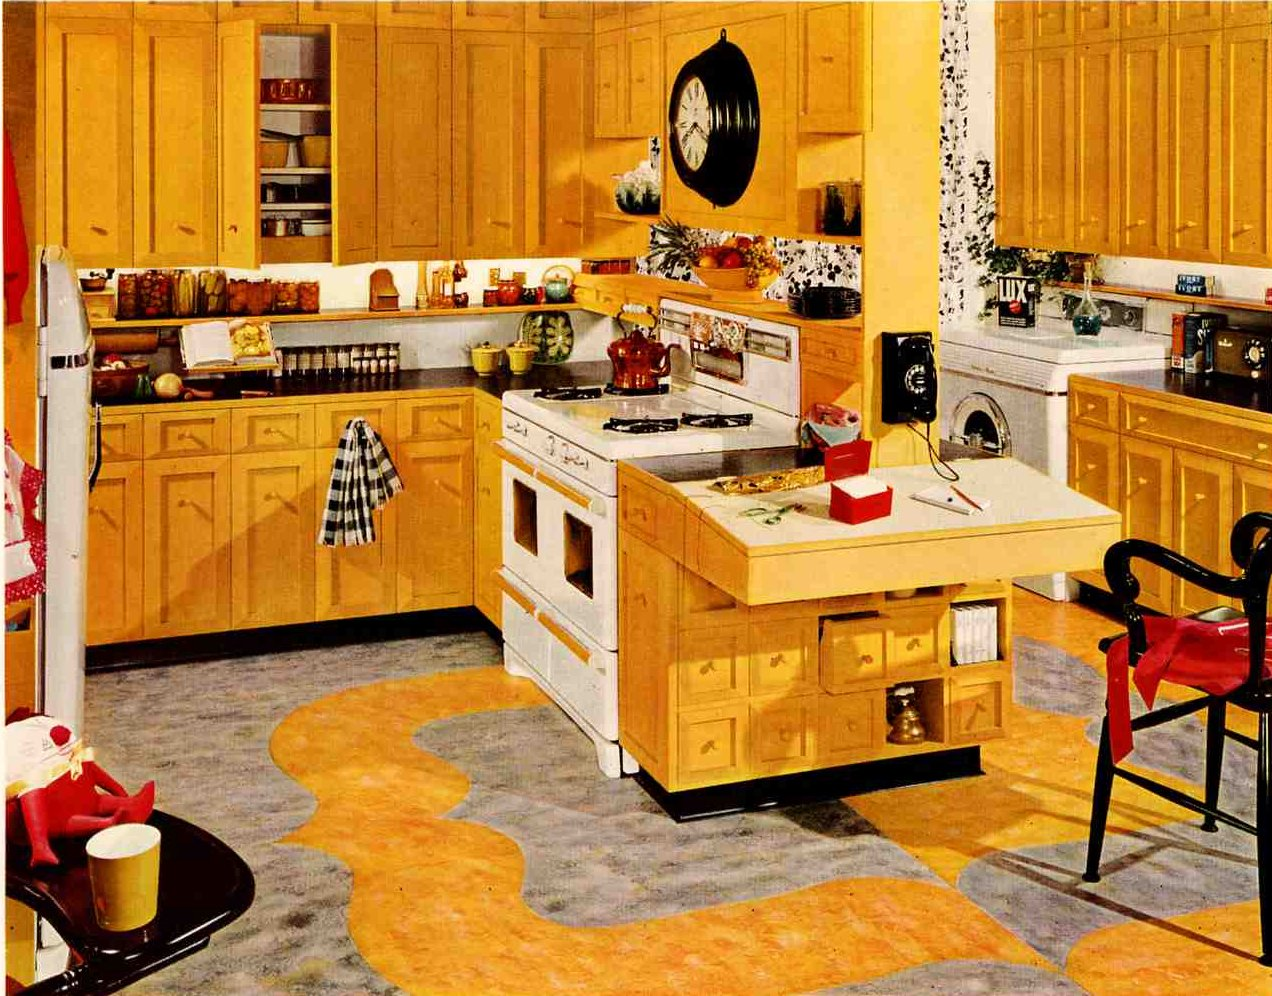 best kitchen remodeling ideas on Cabinets for Kitchen: Yellow Kitchen Cabinets - Color Ideas